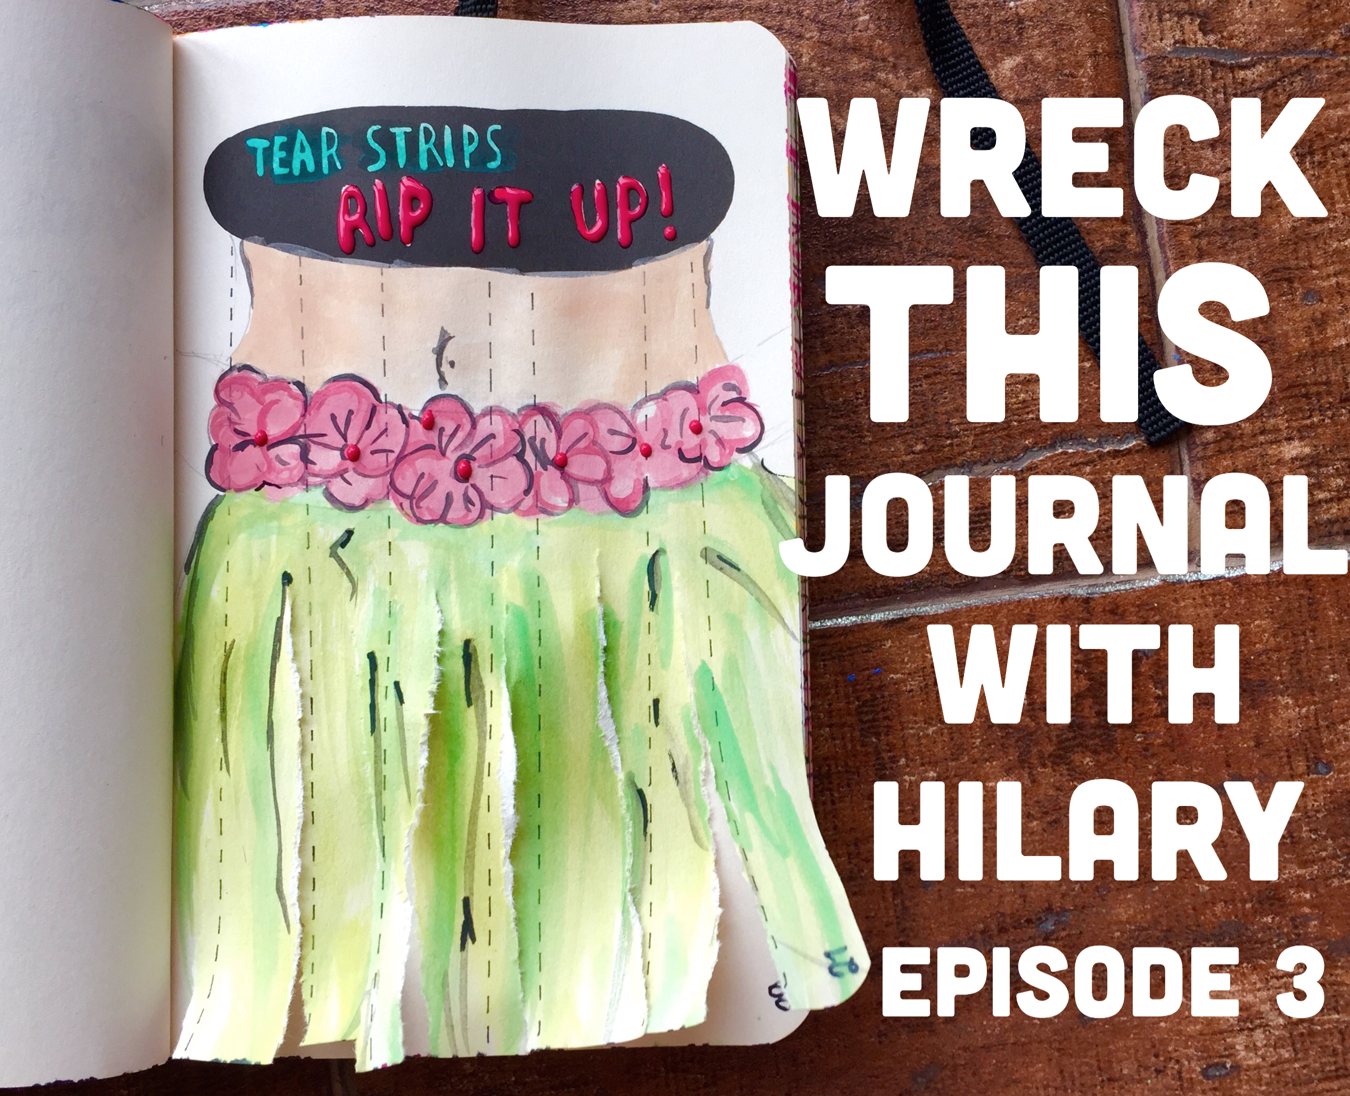 Wreck The Journal With Hilary //Episode 3